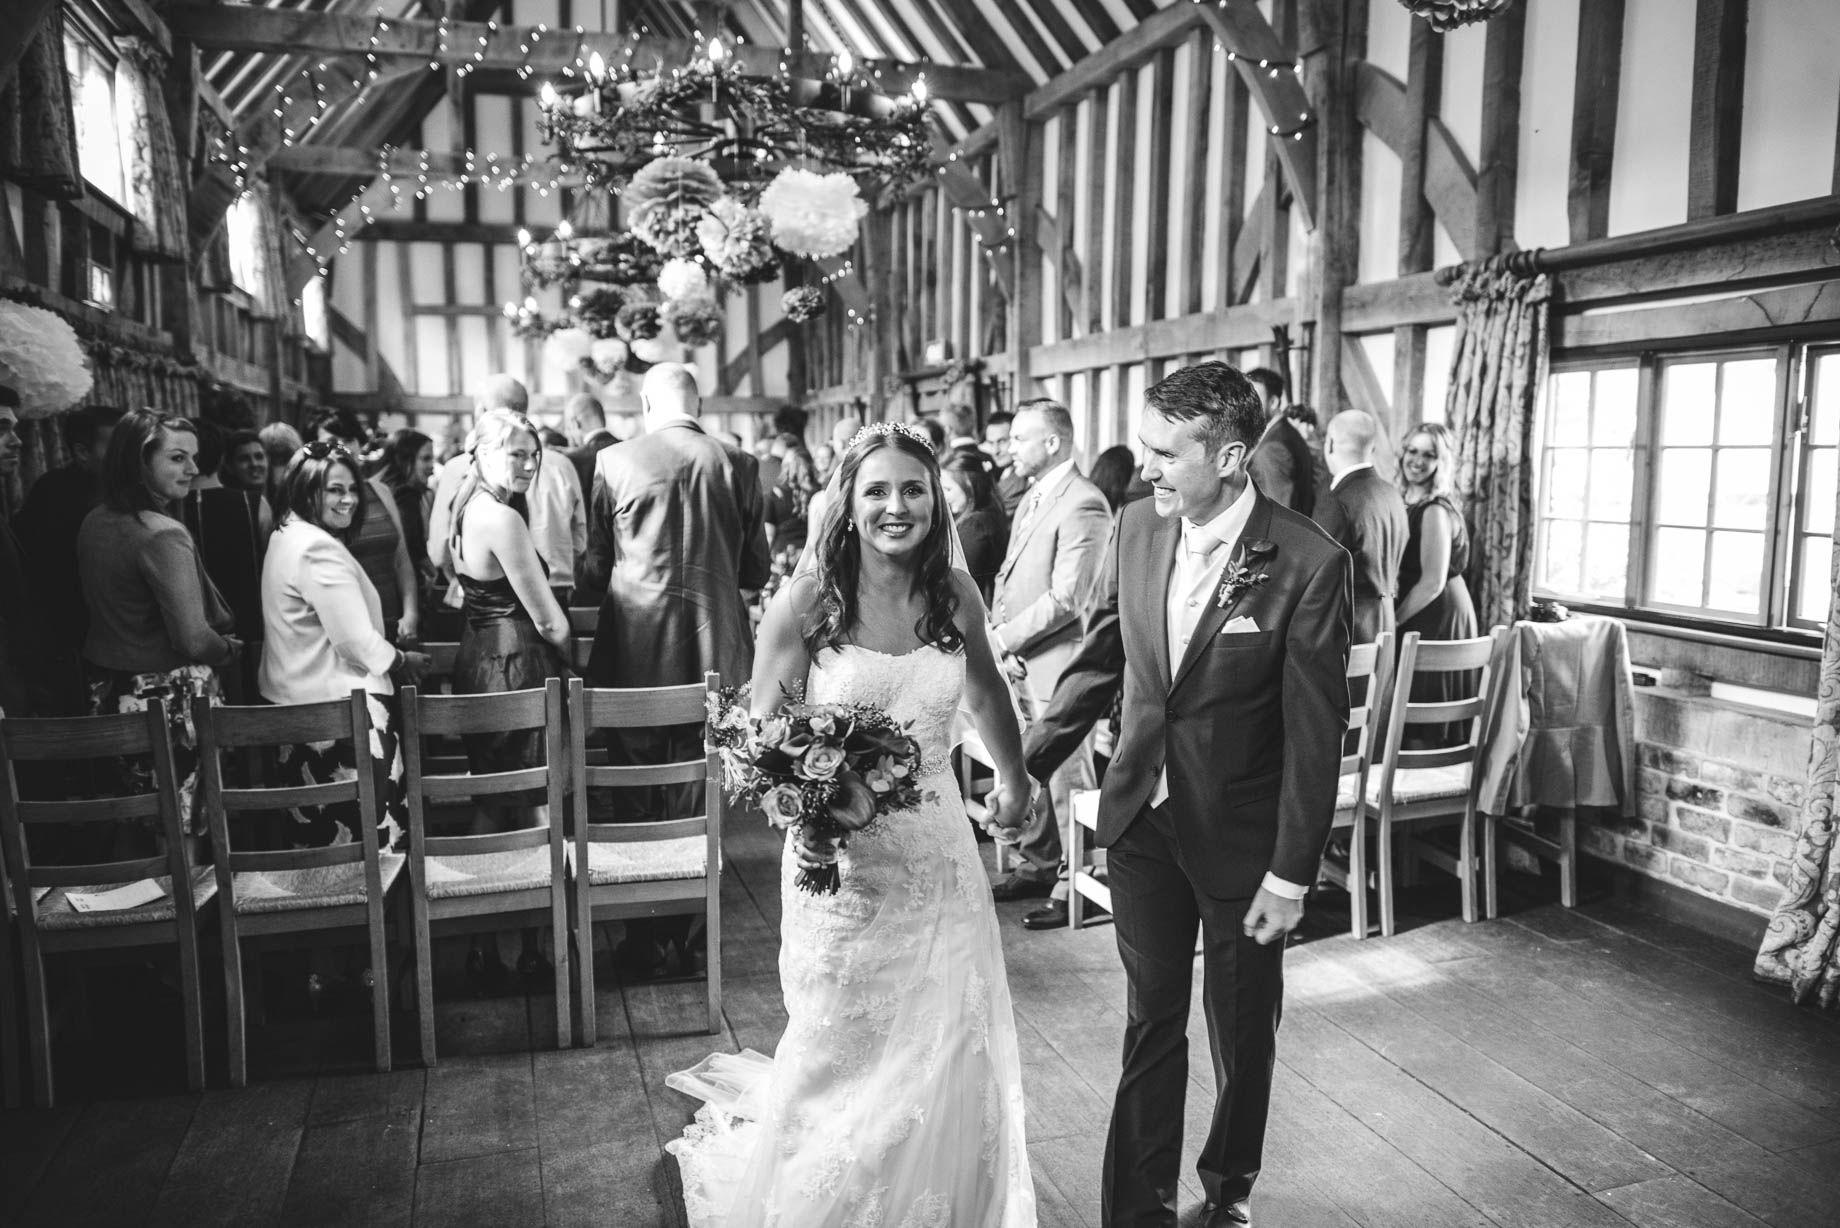 Gate Street Barn wedding photography - Guy Collier - Claire and Andy (63 of 192)